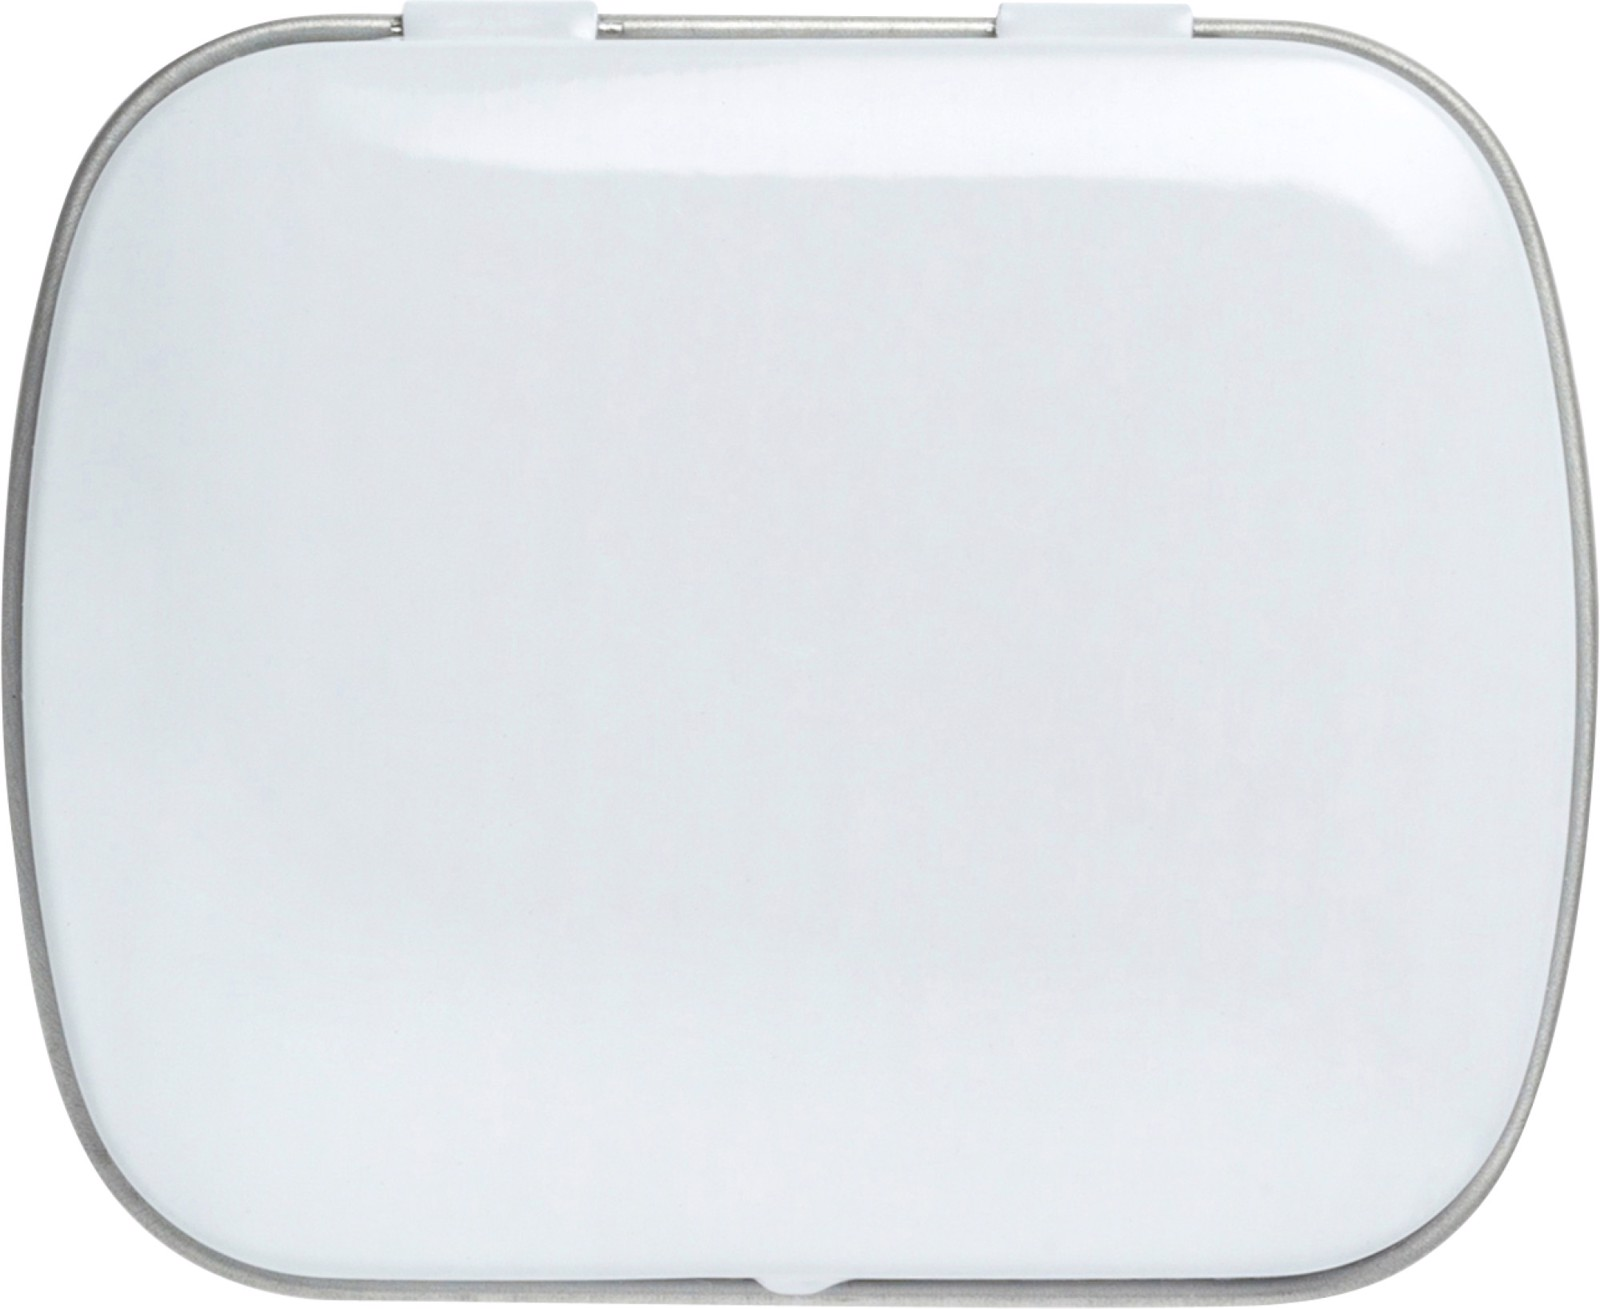 Tin case with mints - White